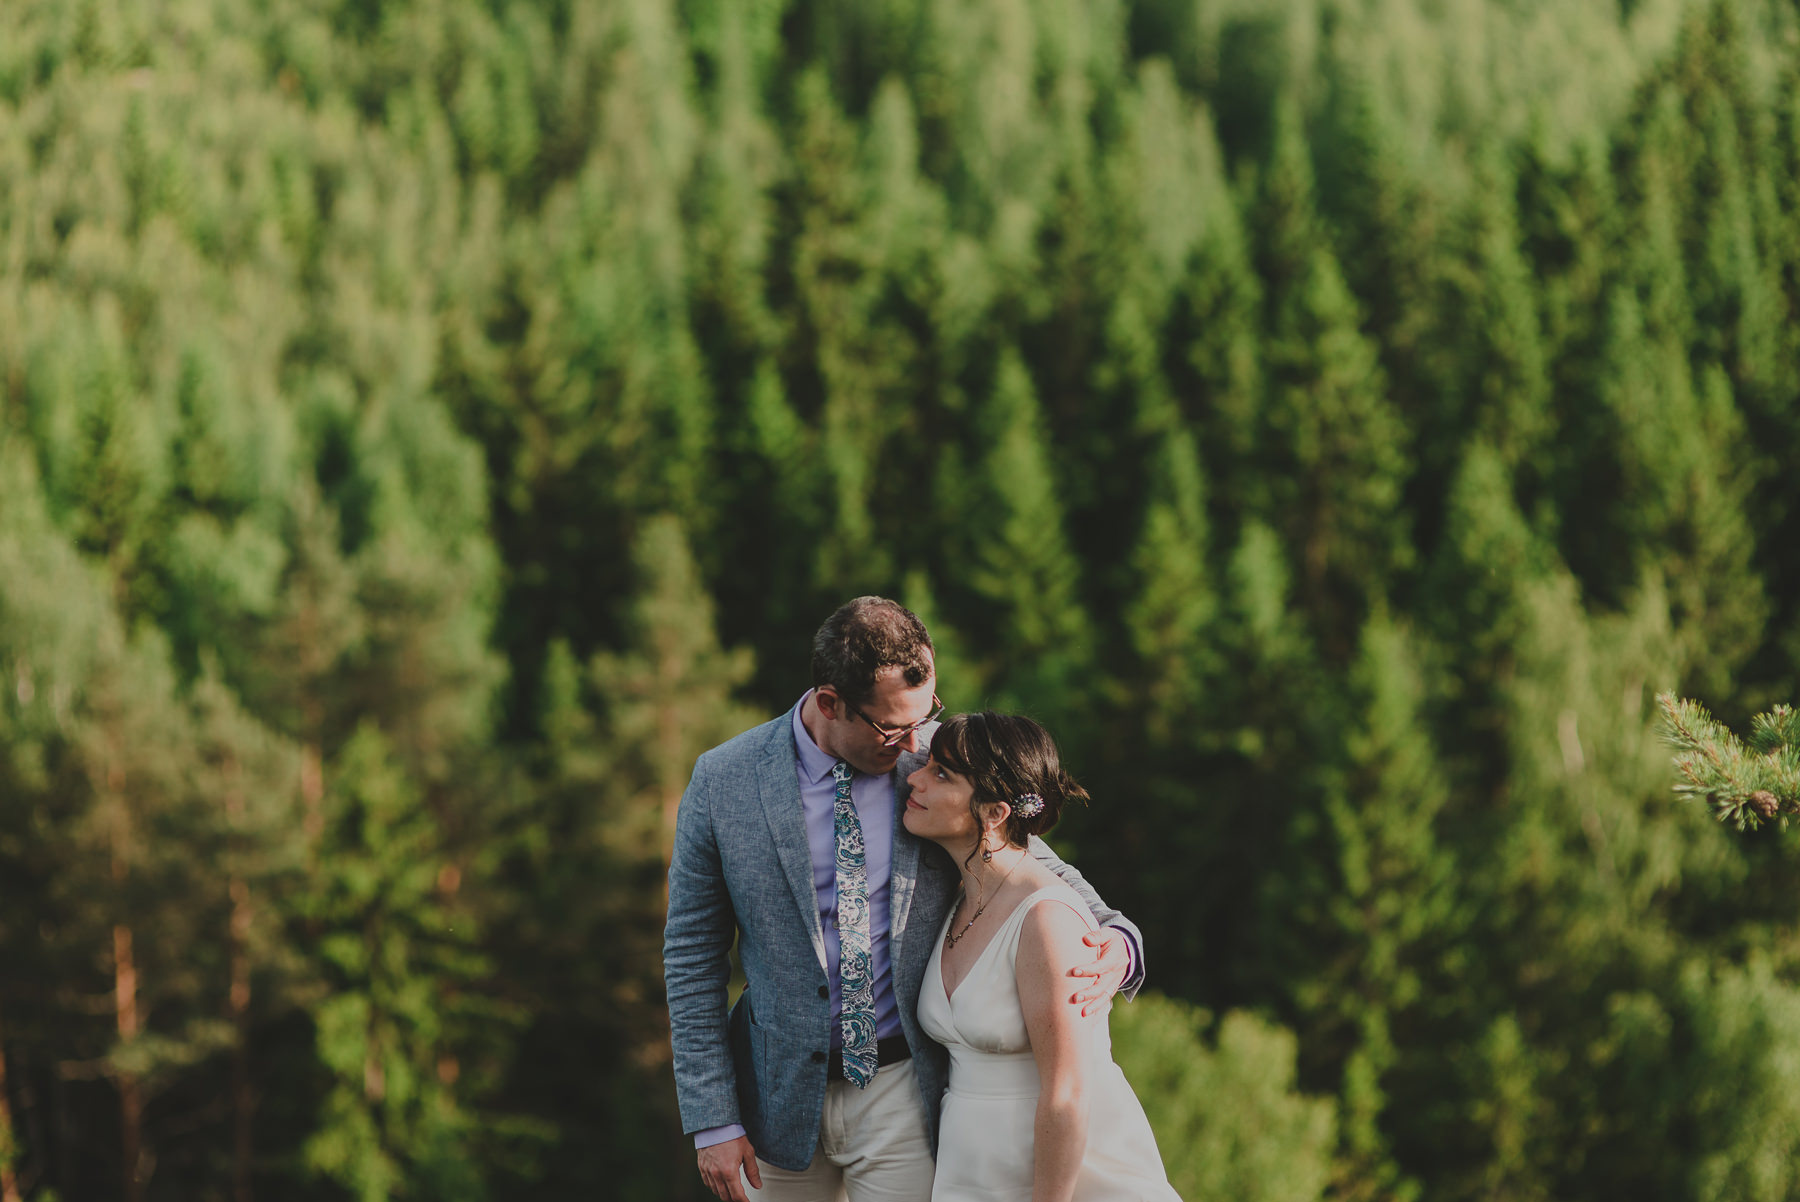 Finland Elopement Photographer 0015